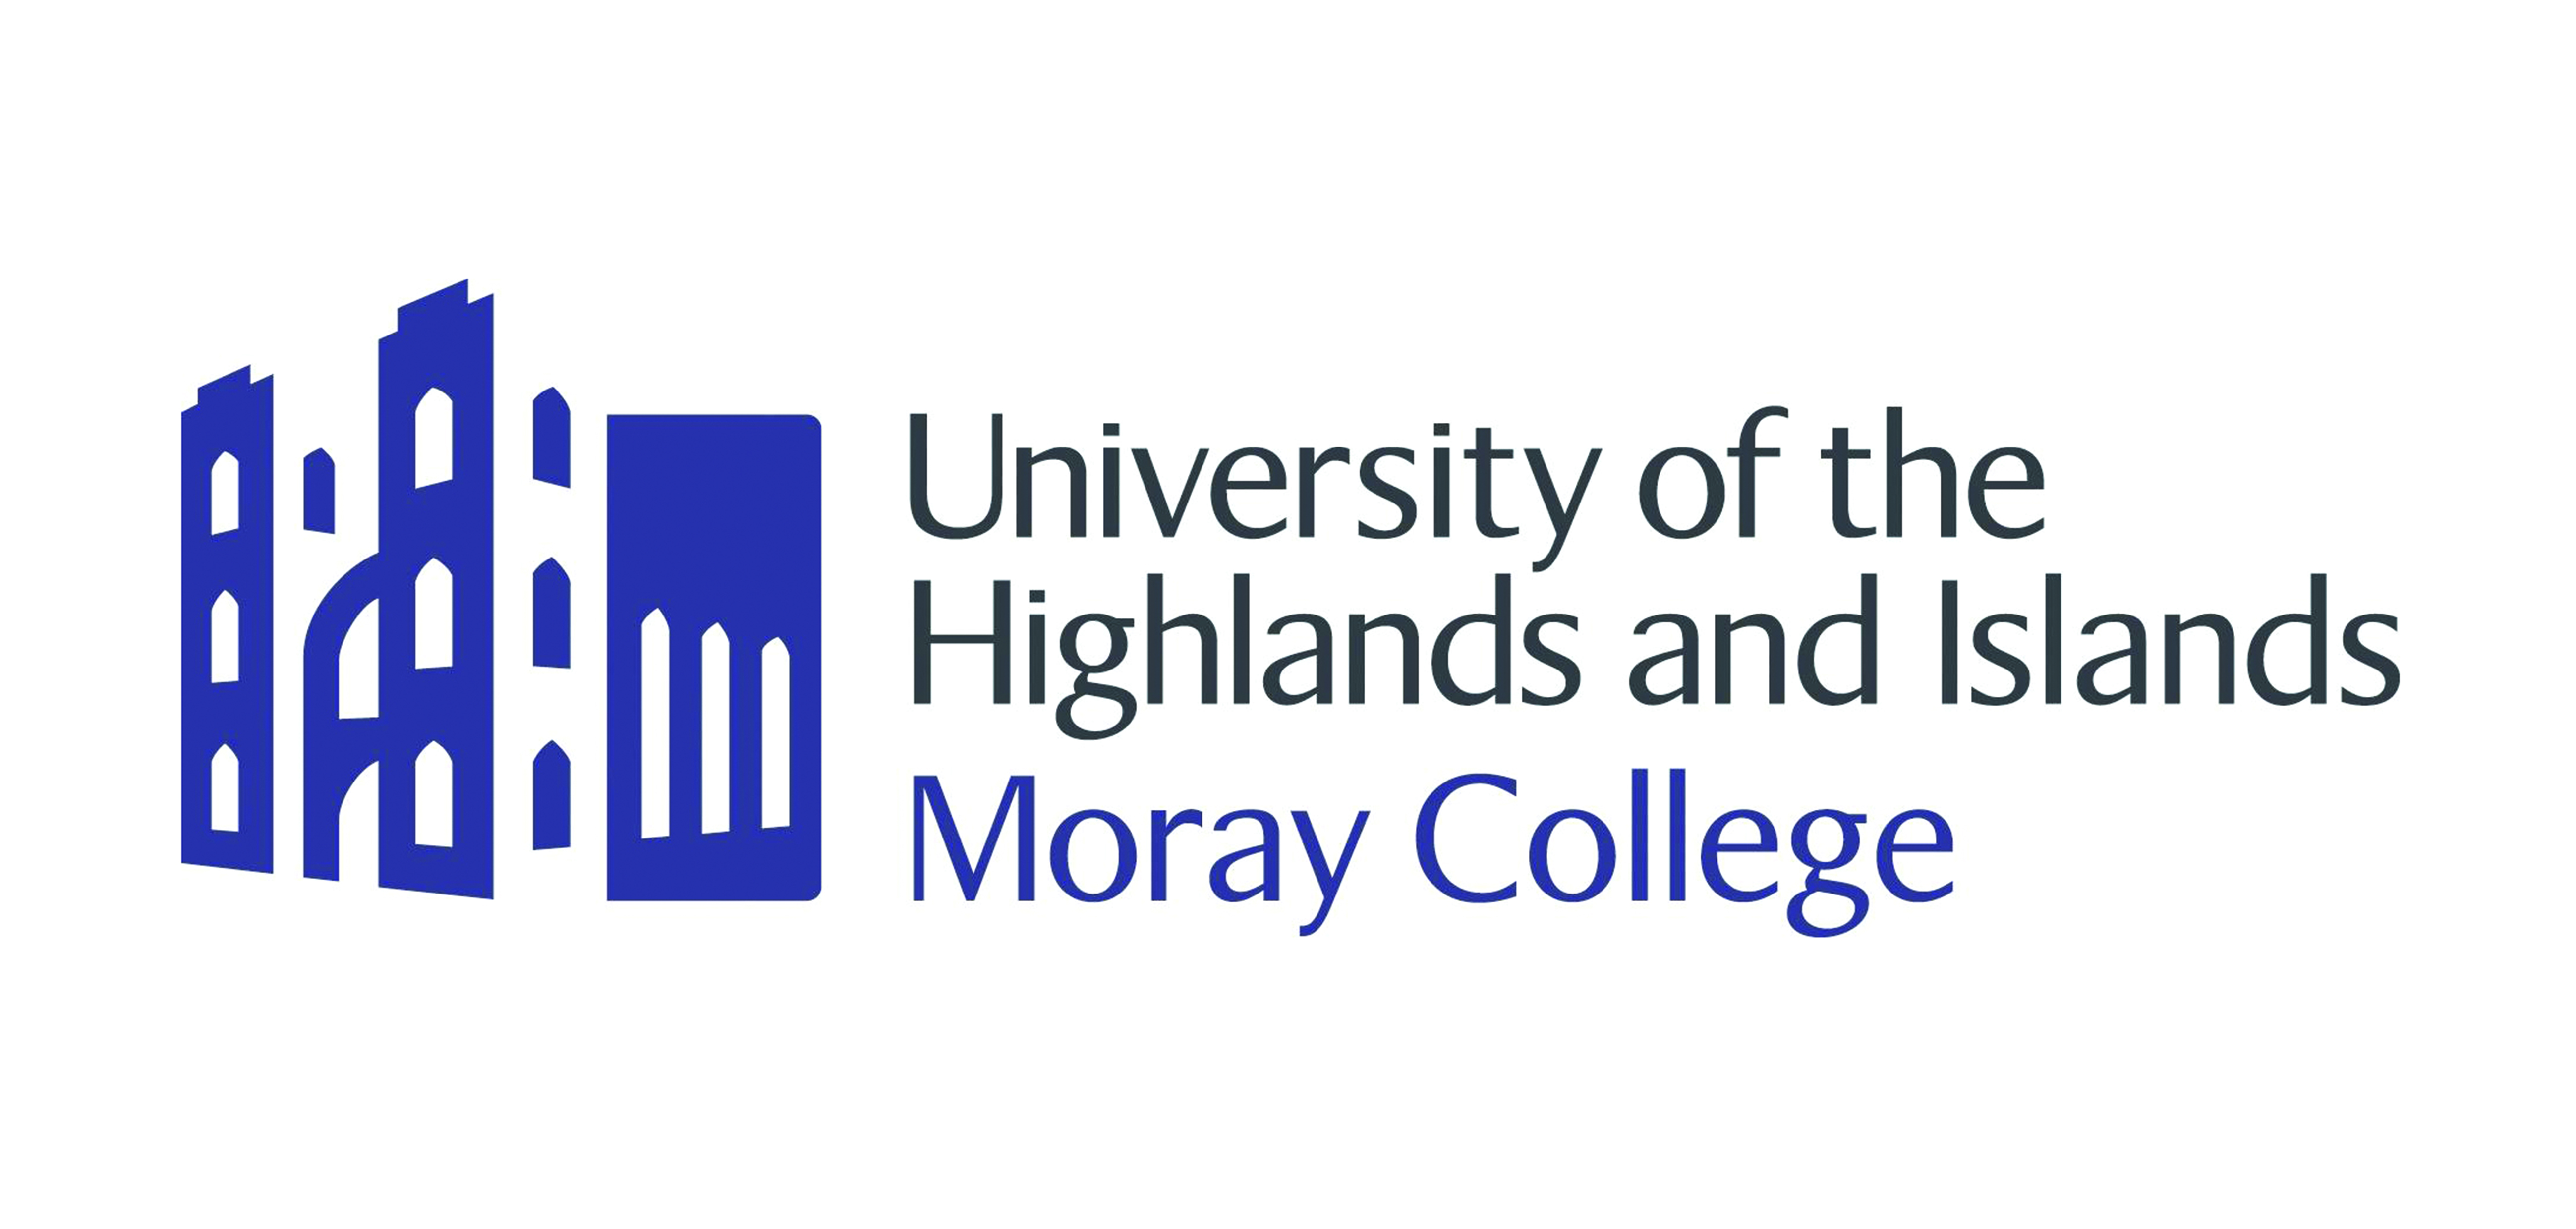 Visit Moray College website